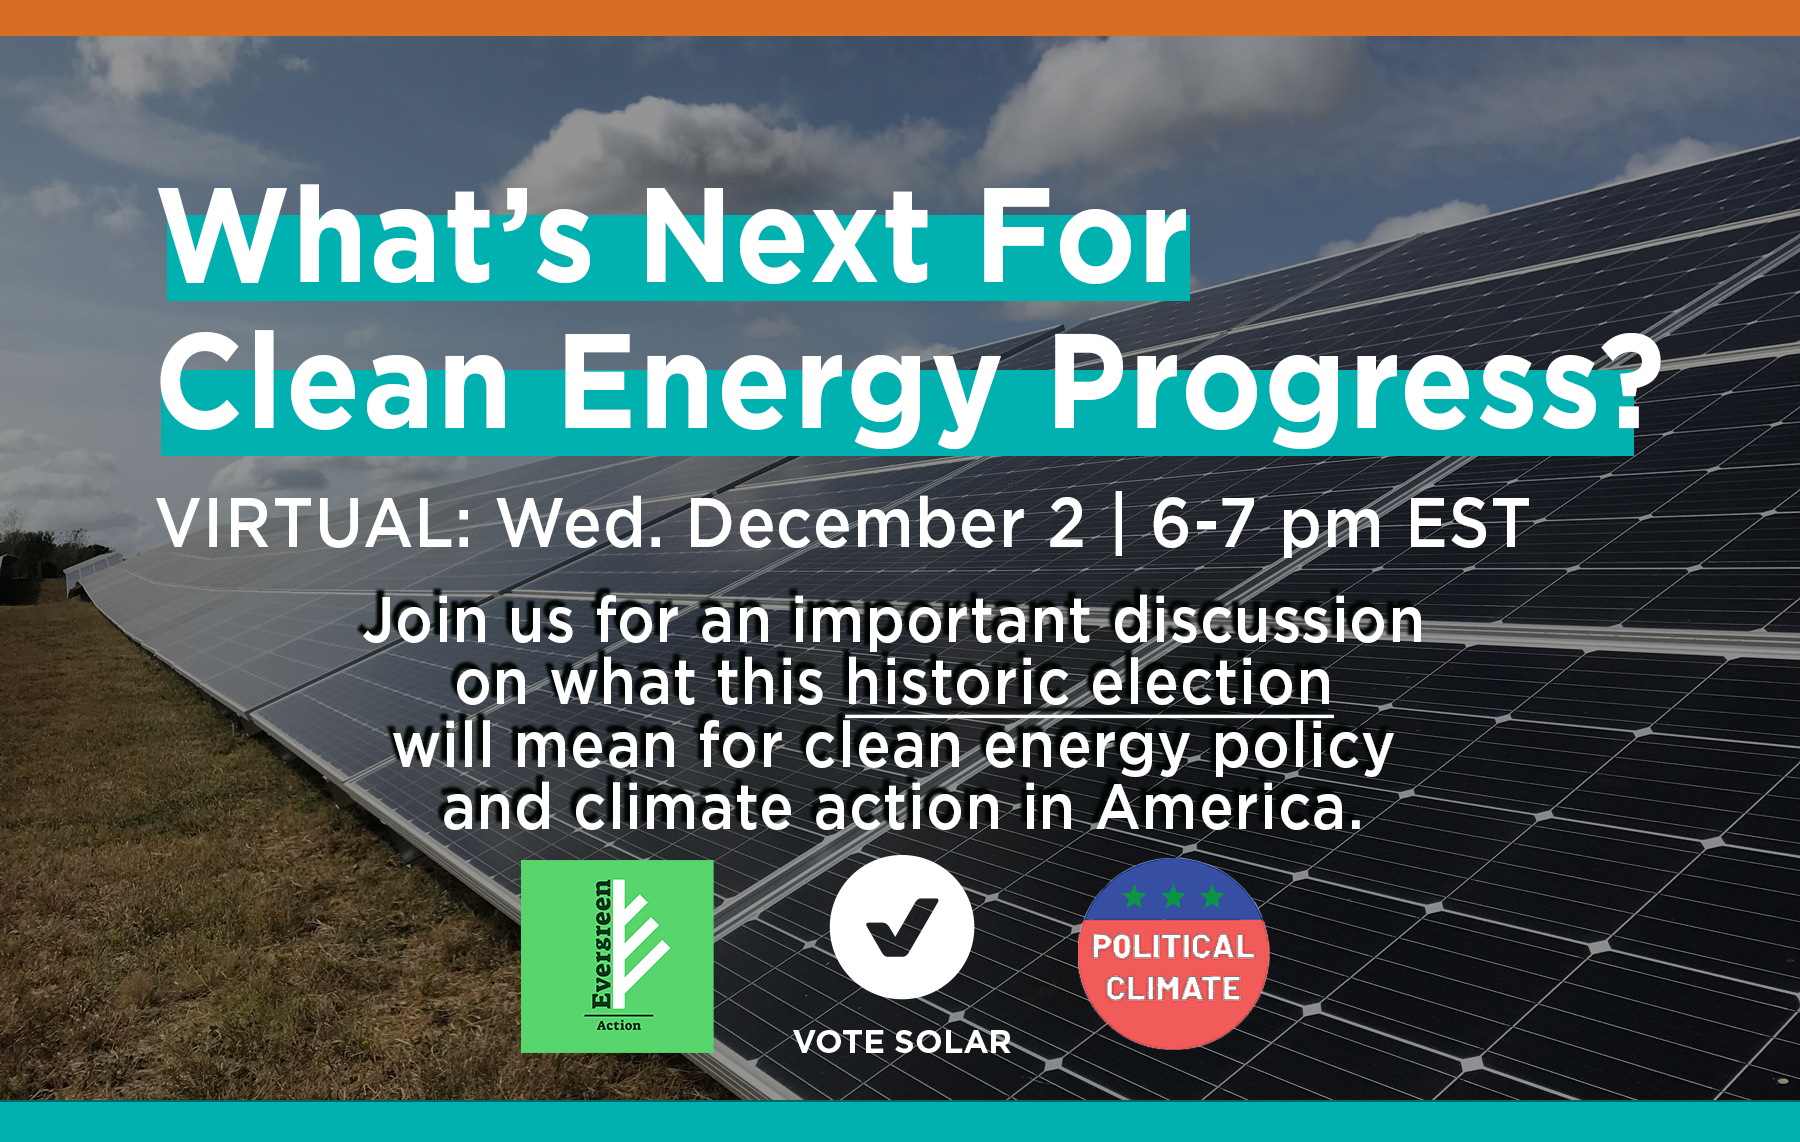 Save the Date: 12/2 What's Next For Clean Energy Progress?